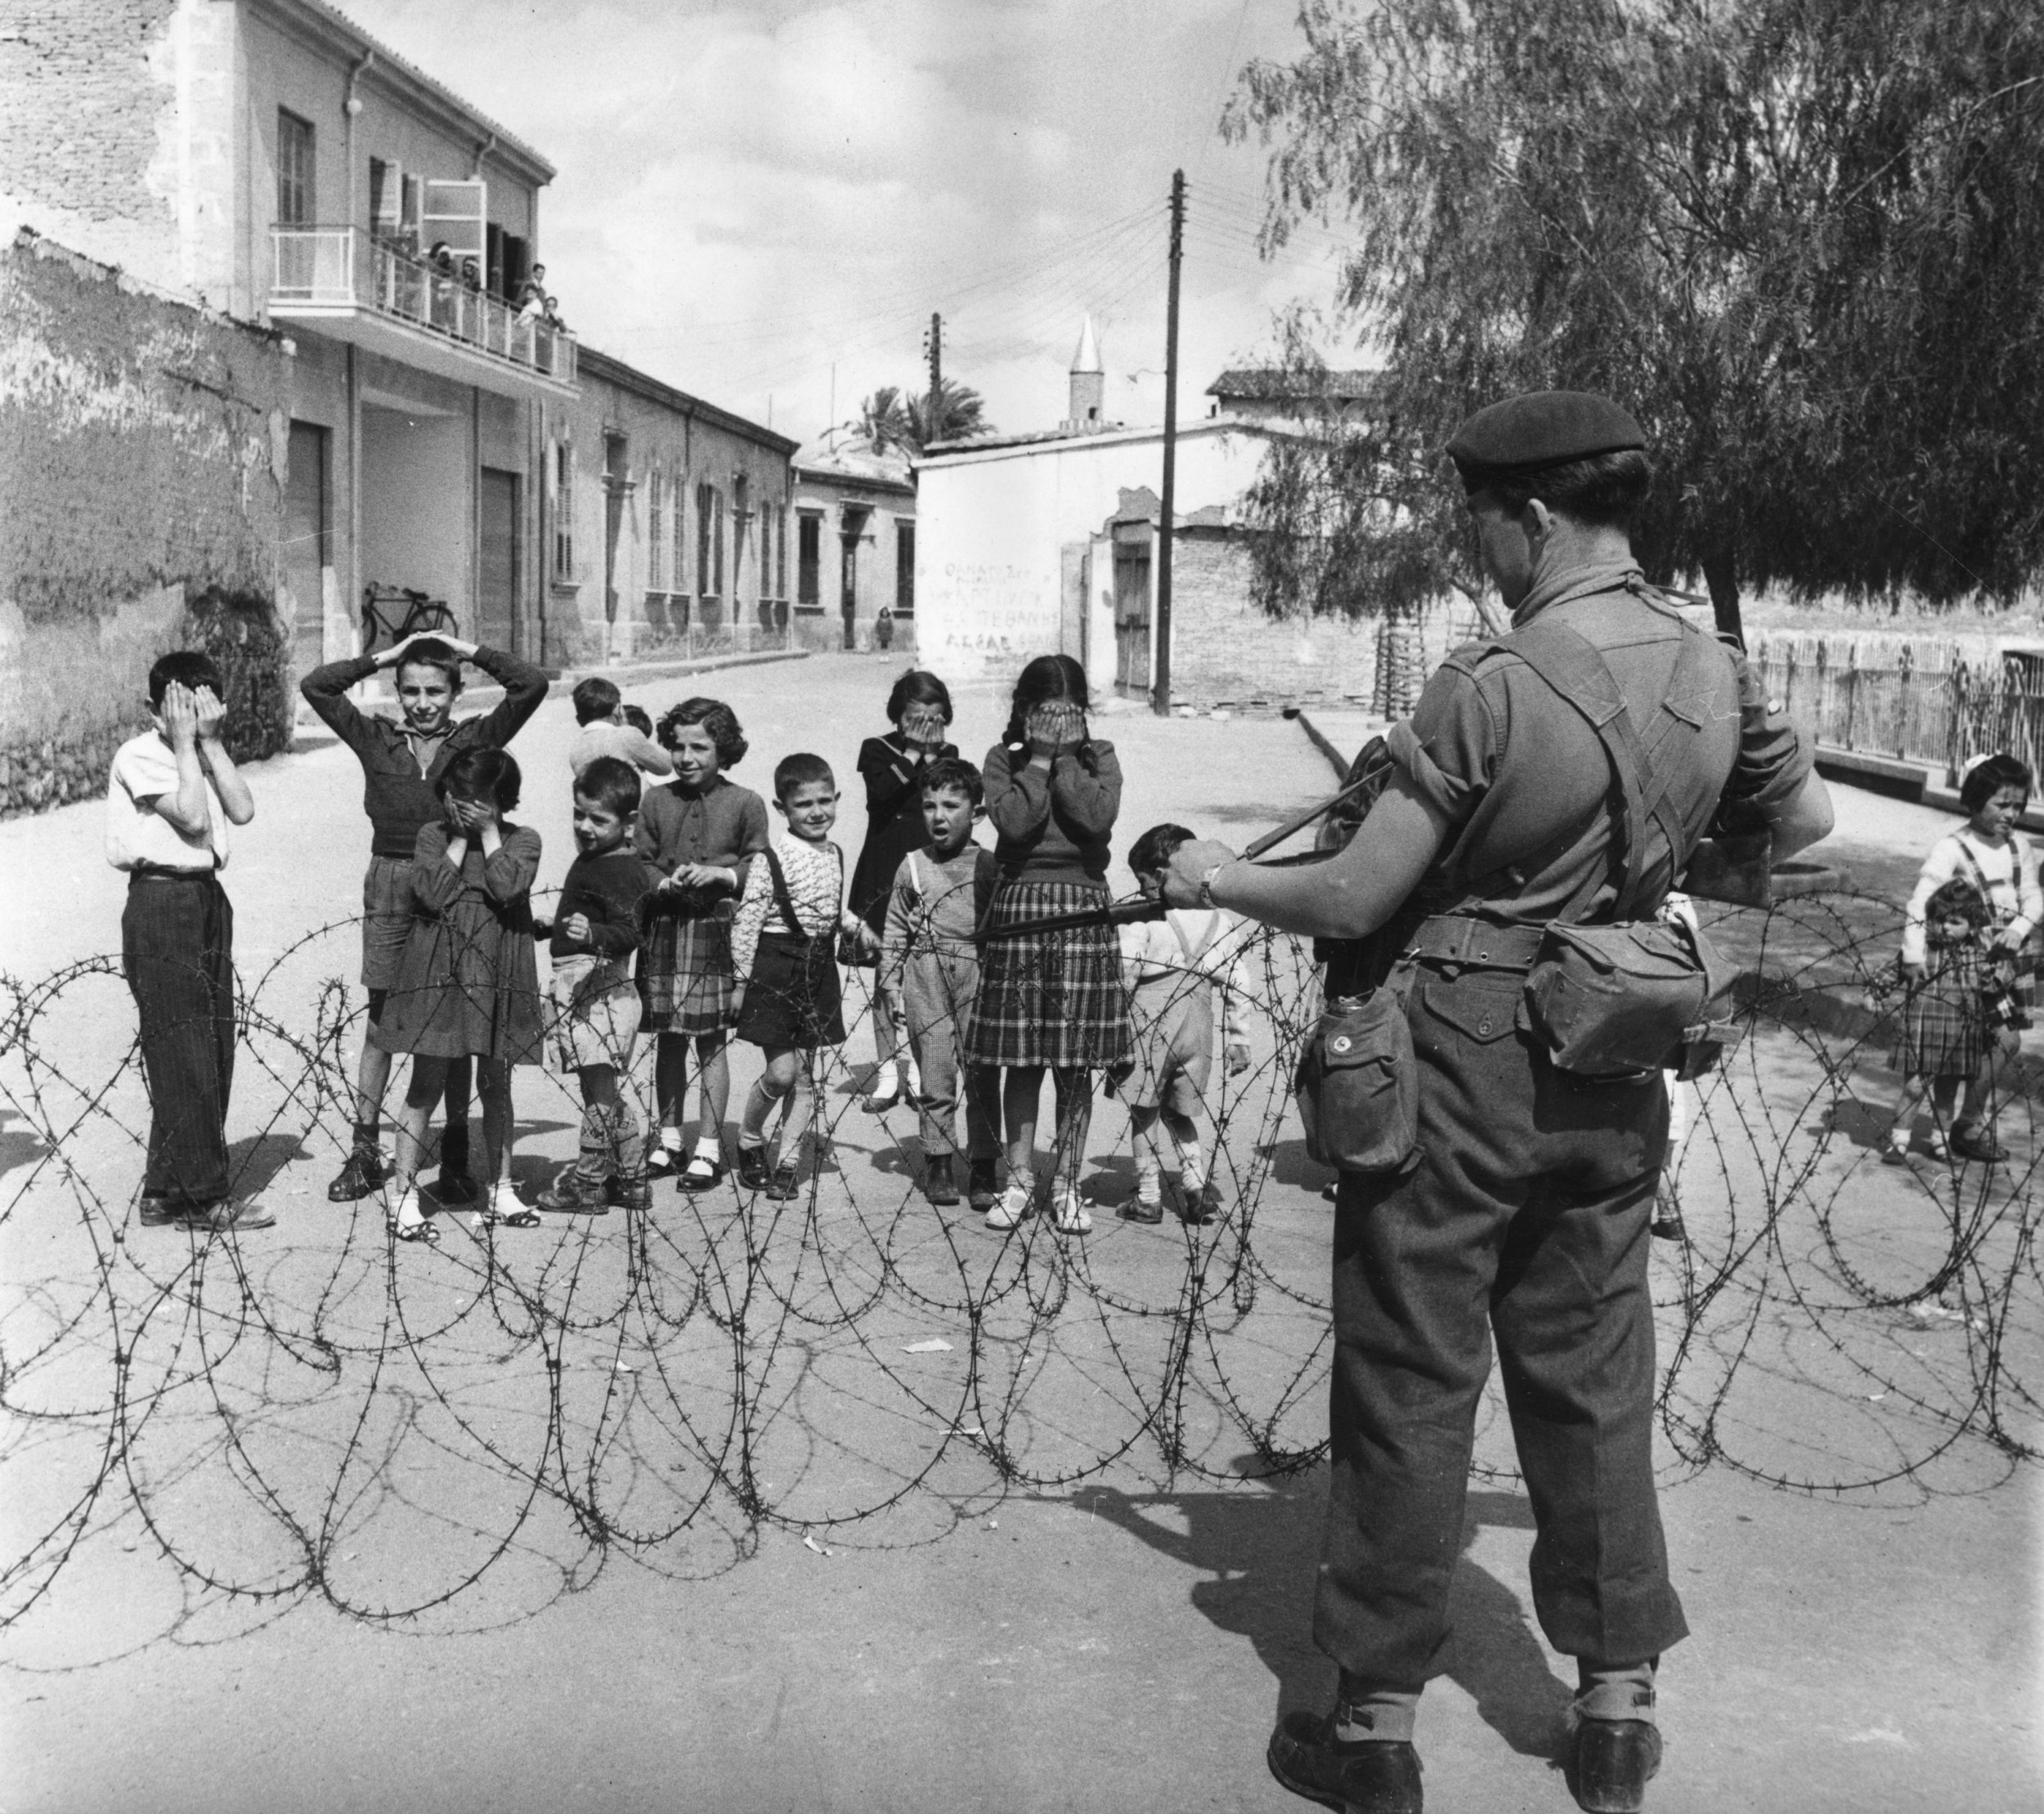 7th April 1956: The net closes on EOKA terrorists in the mountainous districts of Cyprus, as a British Marine guards the road and bewildered children look on. The move follows the failure of intergovernmental talks over the future of the territory. Original Publication: Picture Post - 8314 - Terrorist Hunt In Cyprus - pub.1956 (Photo by Bert Hardy/Picture Post/Getty Images)